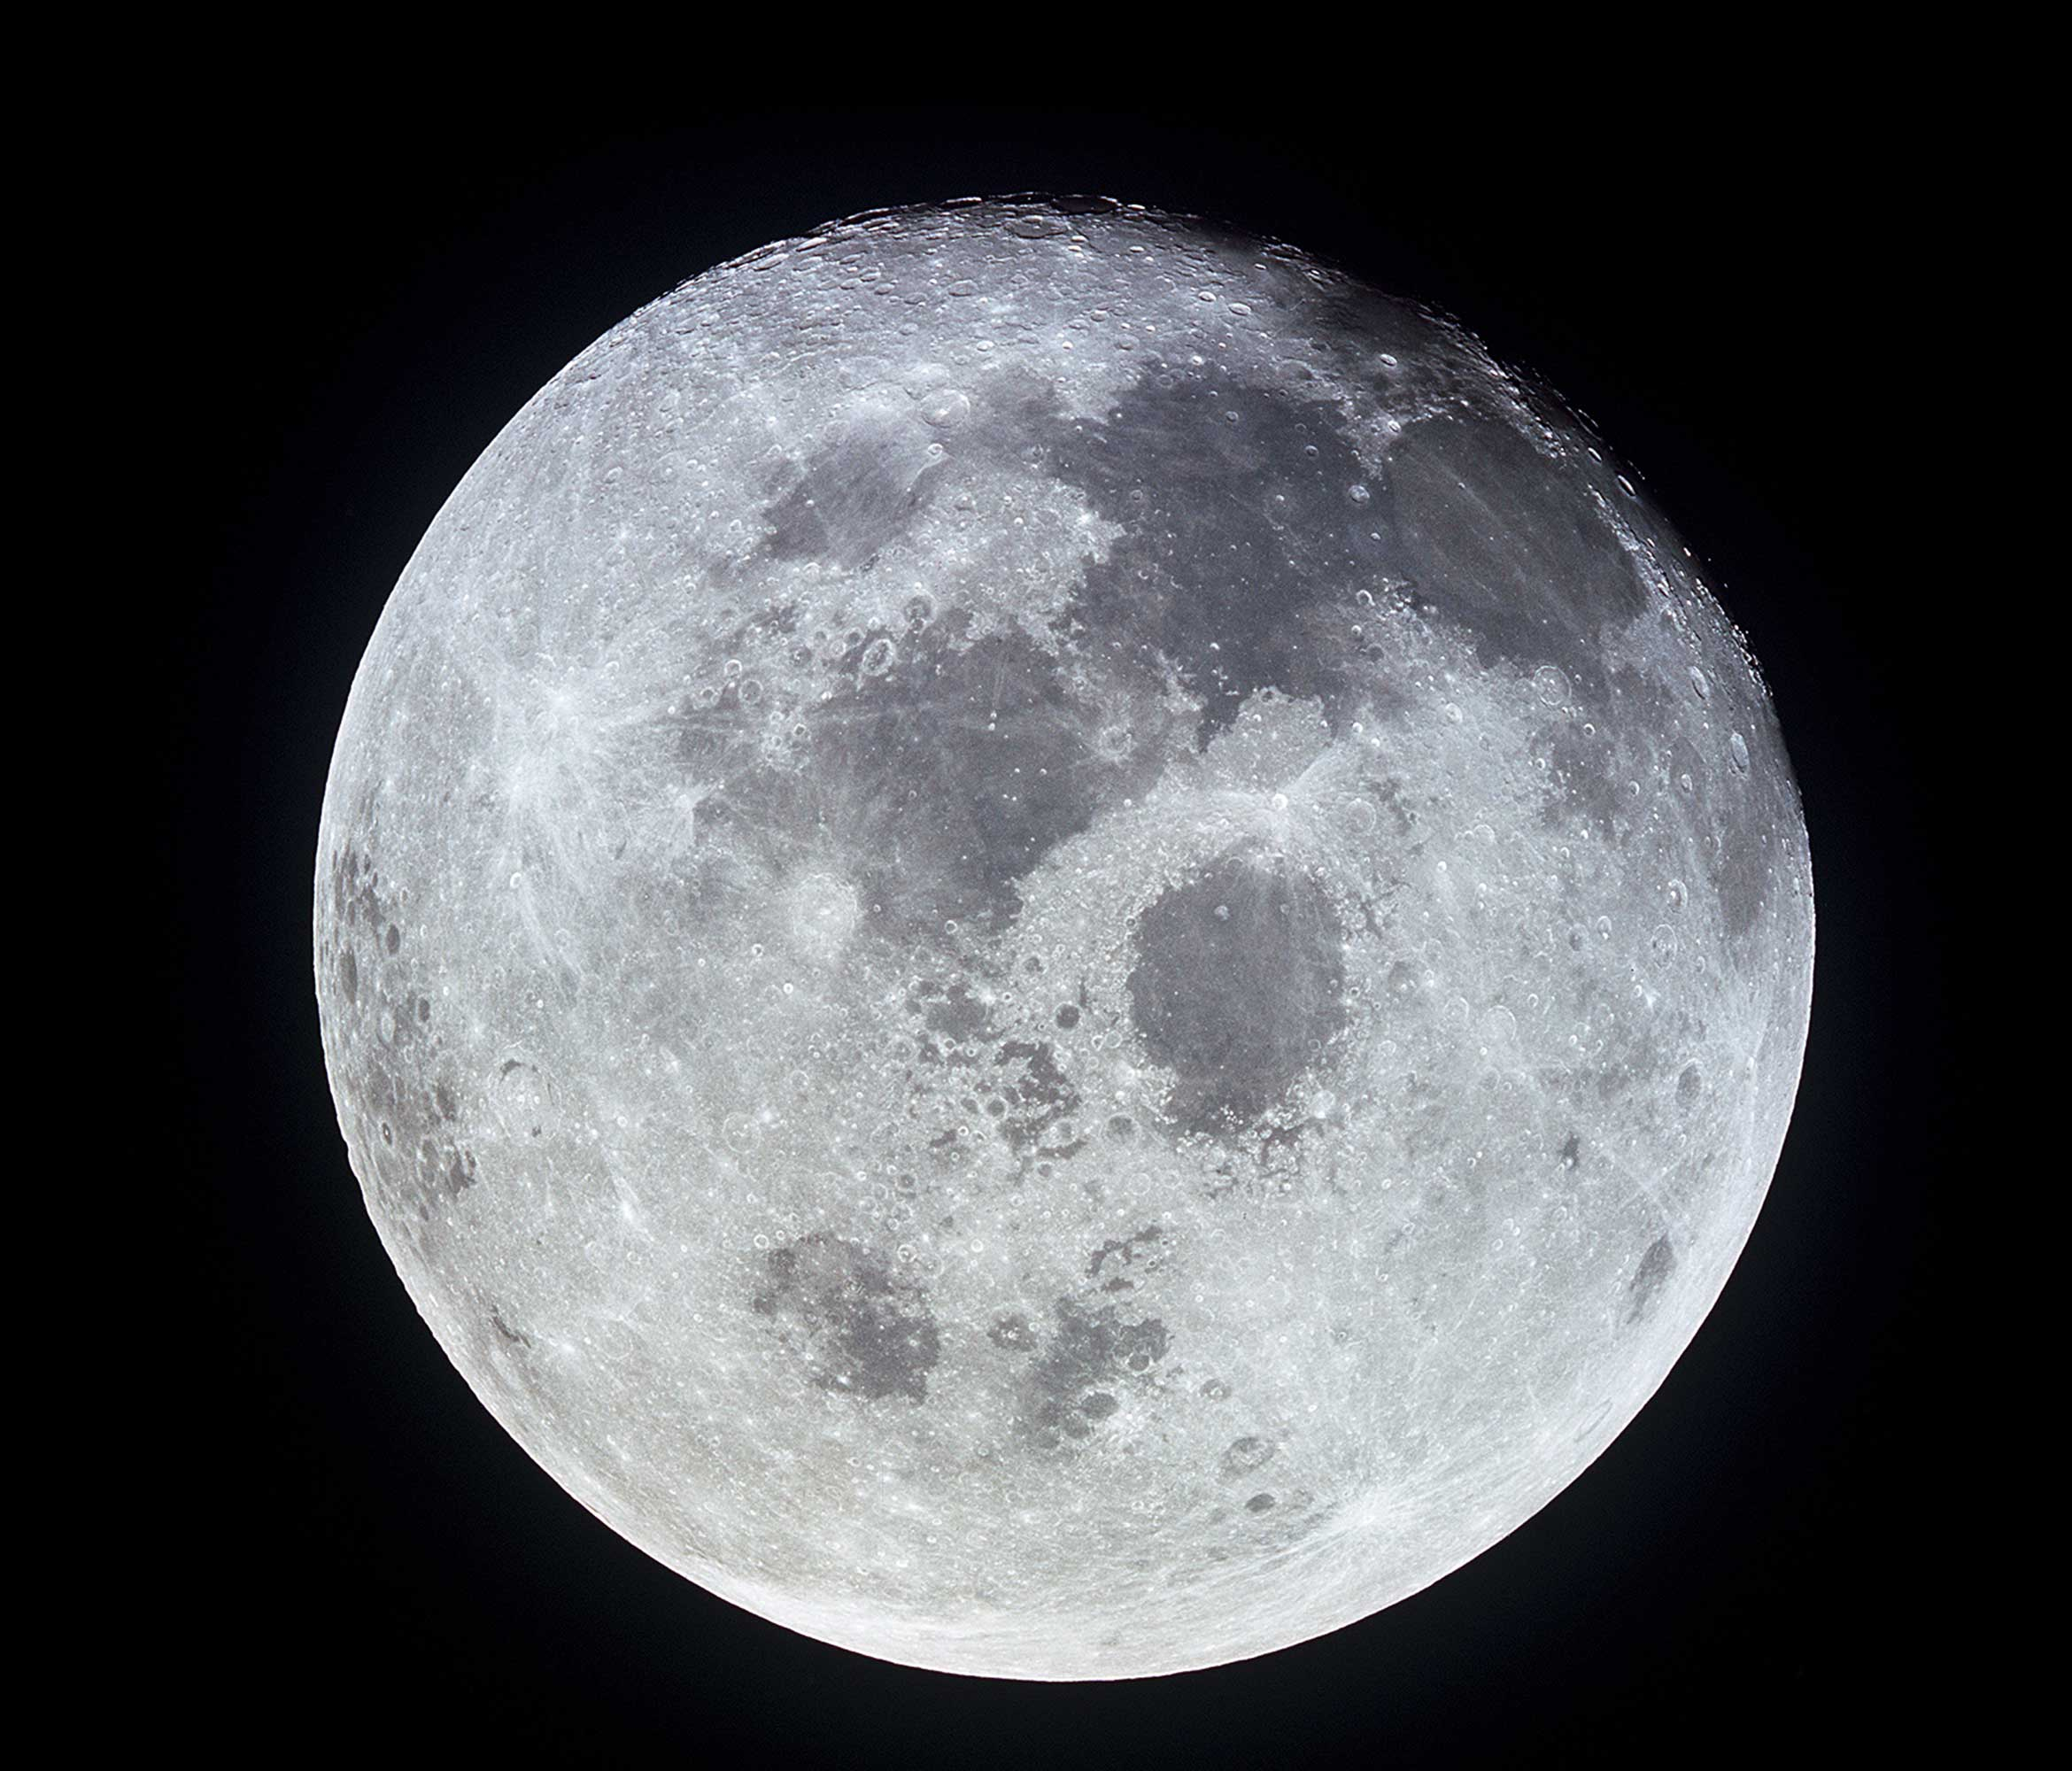 View of a full Moon photographed from Apollo 11 spacecraft